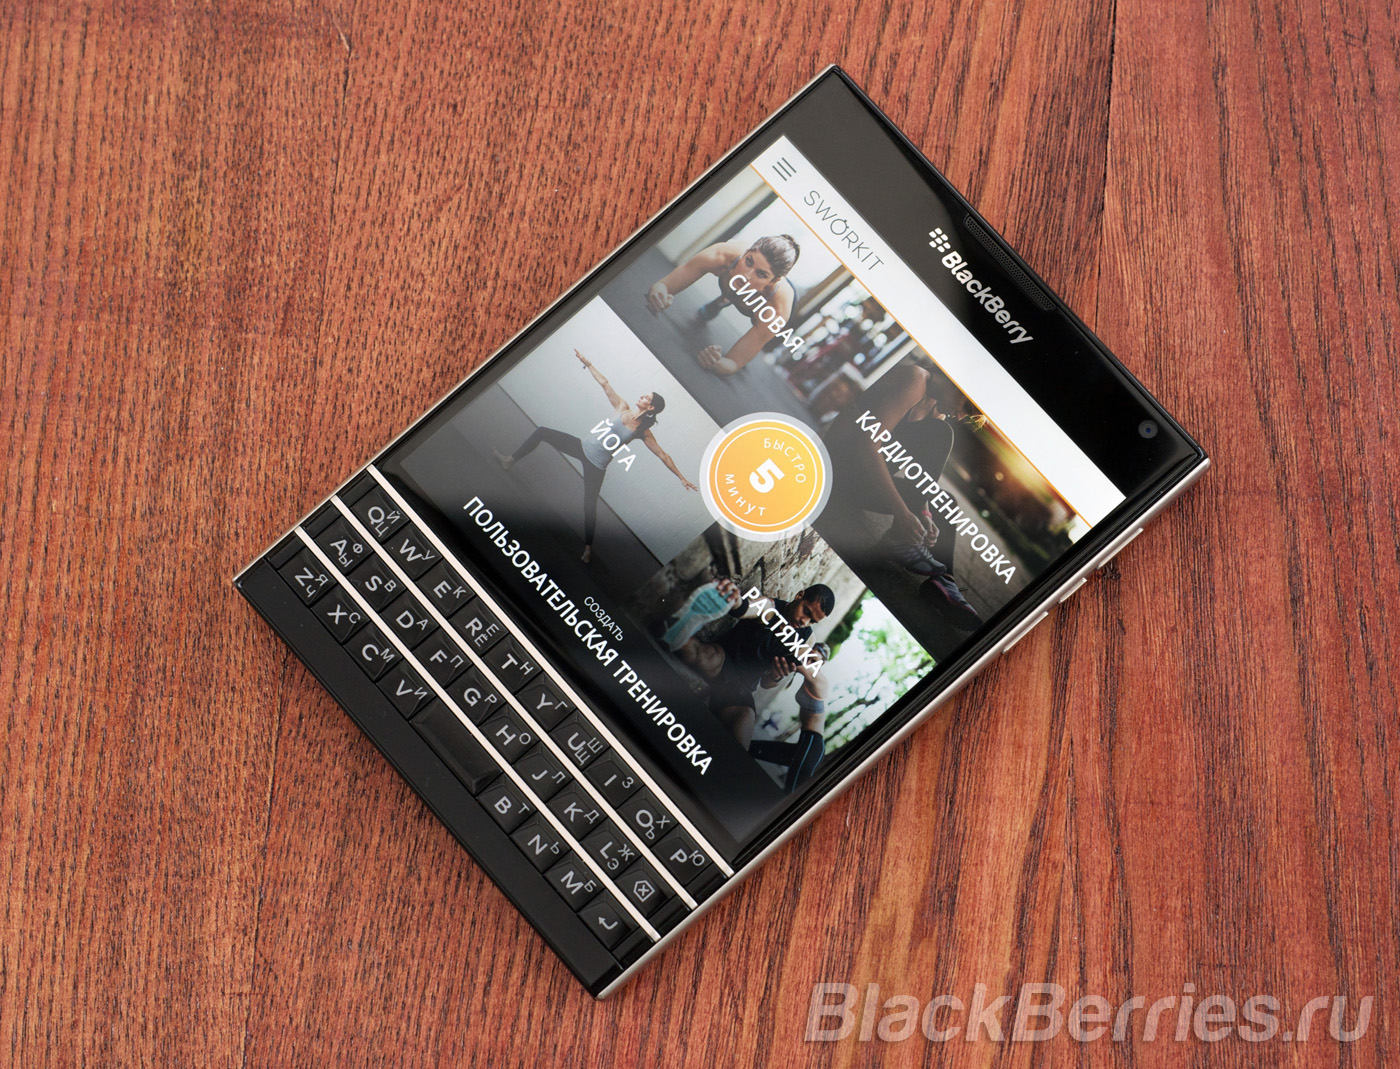 BlackBerry-Passport-Sworkit